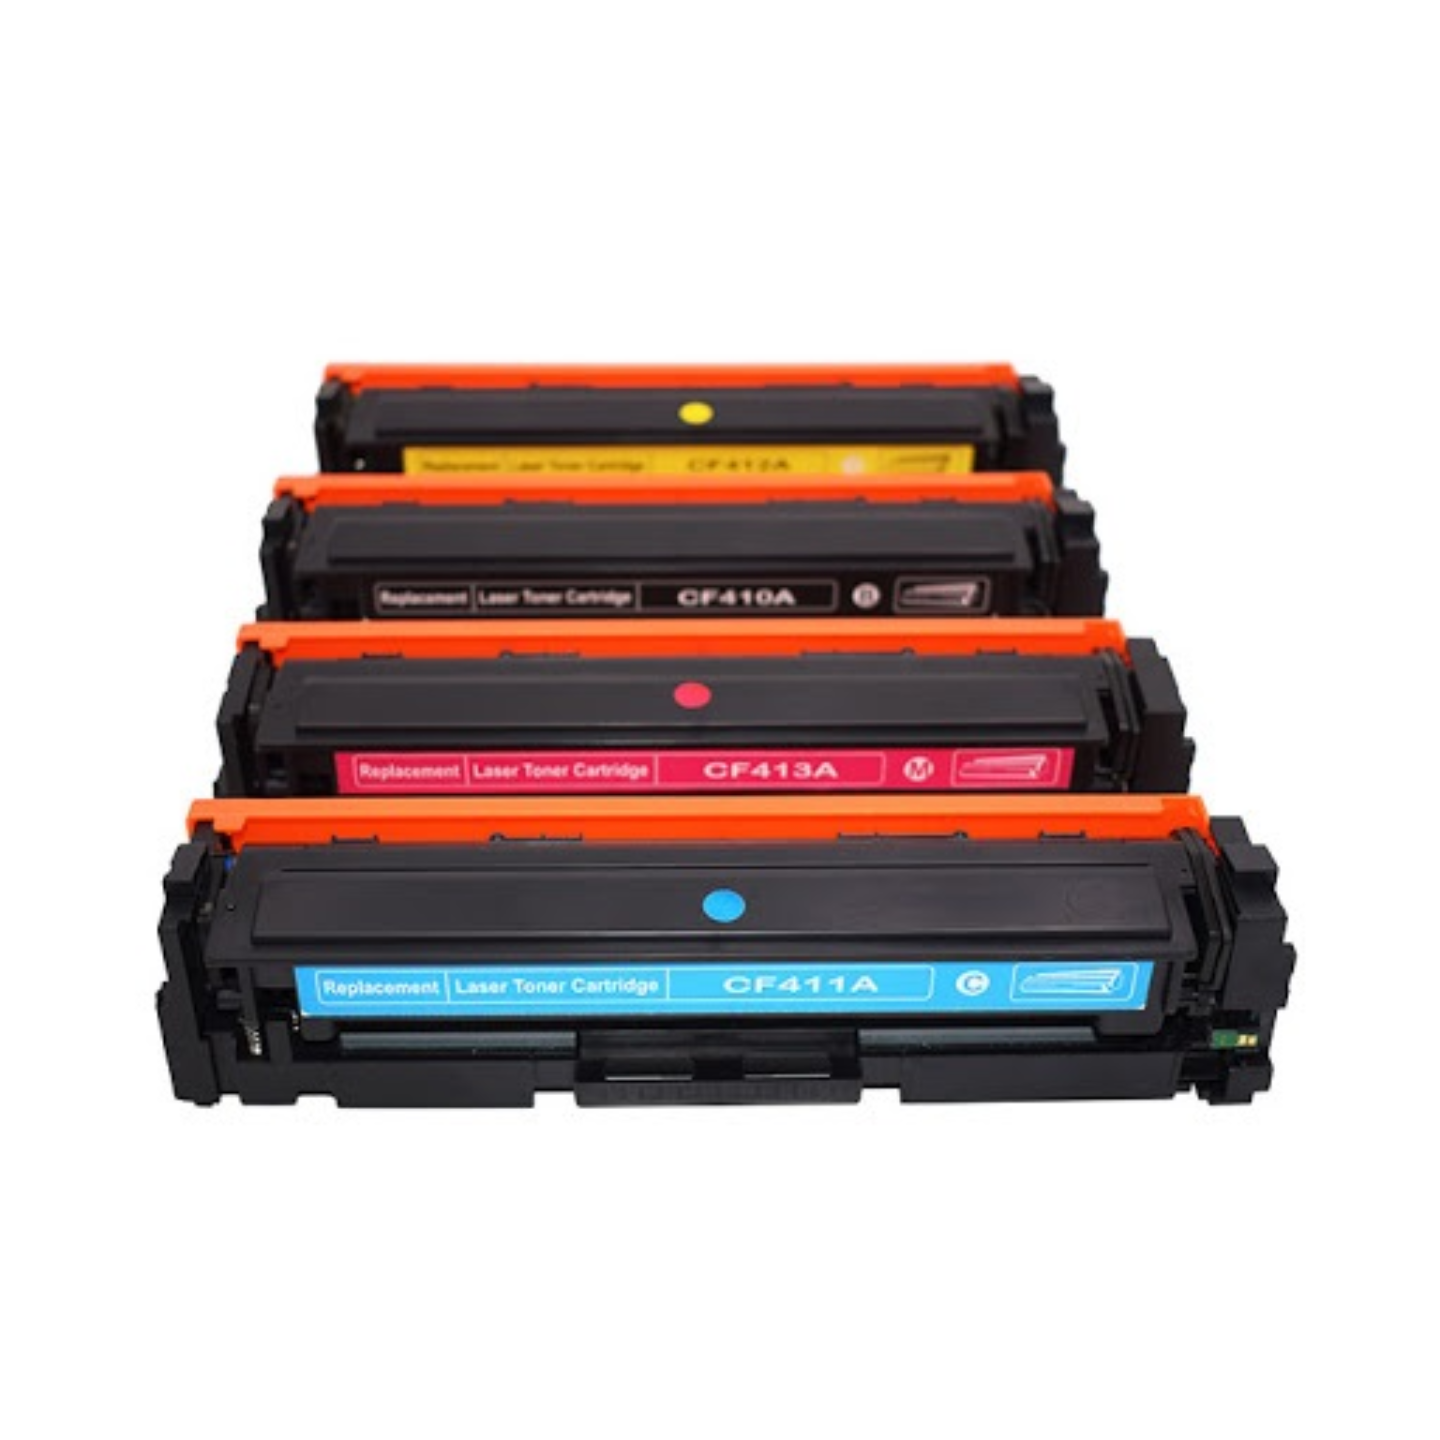 Compatible Toner for HP Printers CF410A/CF411A/CF412A/CF413A (CYMB Set)